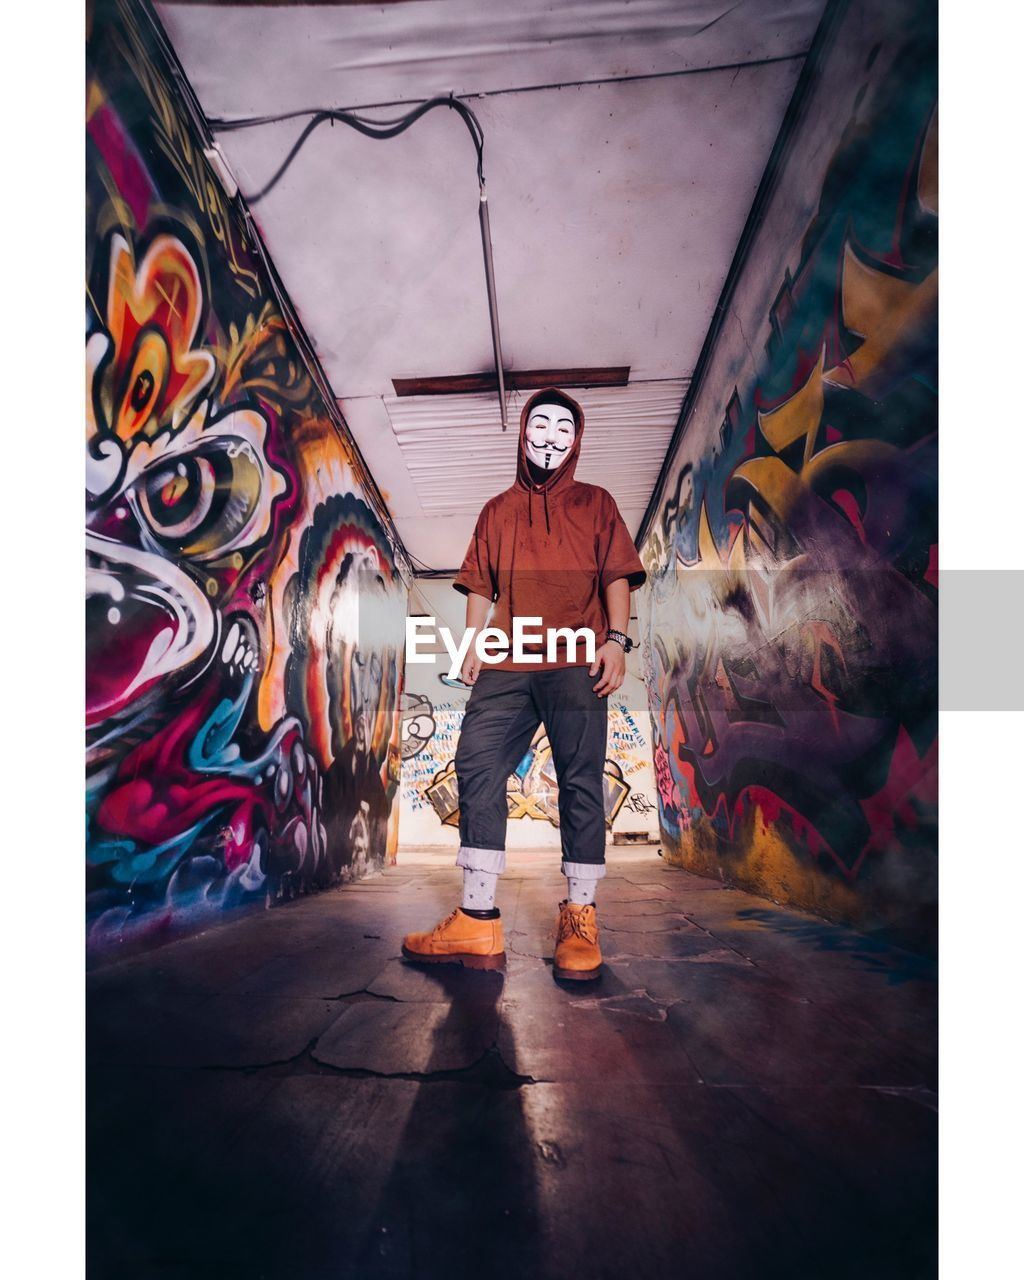 one person, real people, full length, creativity, art and craft, wall - building feature, standing, lifestyles, rear view, graffiti, indoors, casual clothing, men, multi colored, architecture, leisure activity, day, auto post production filter, mural